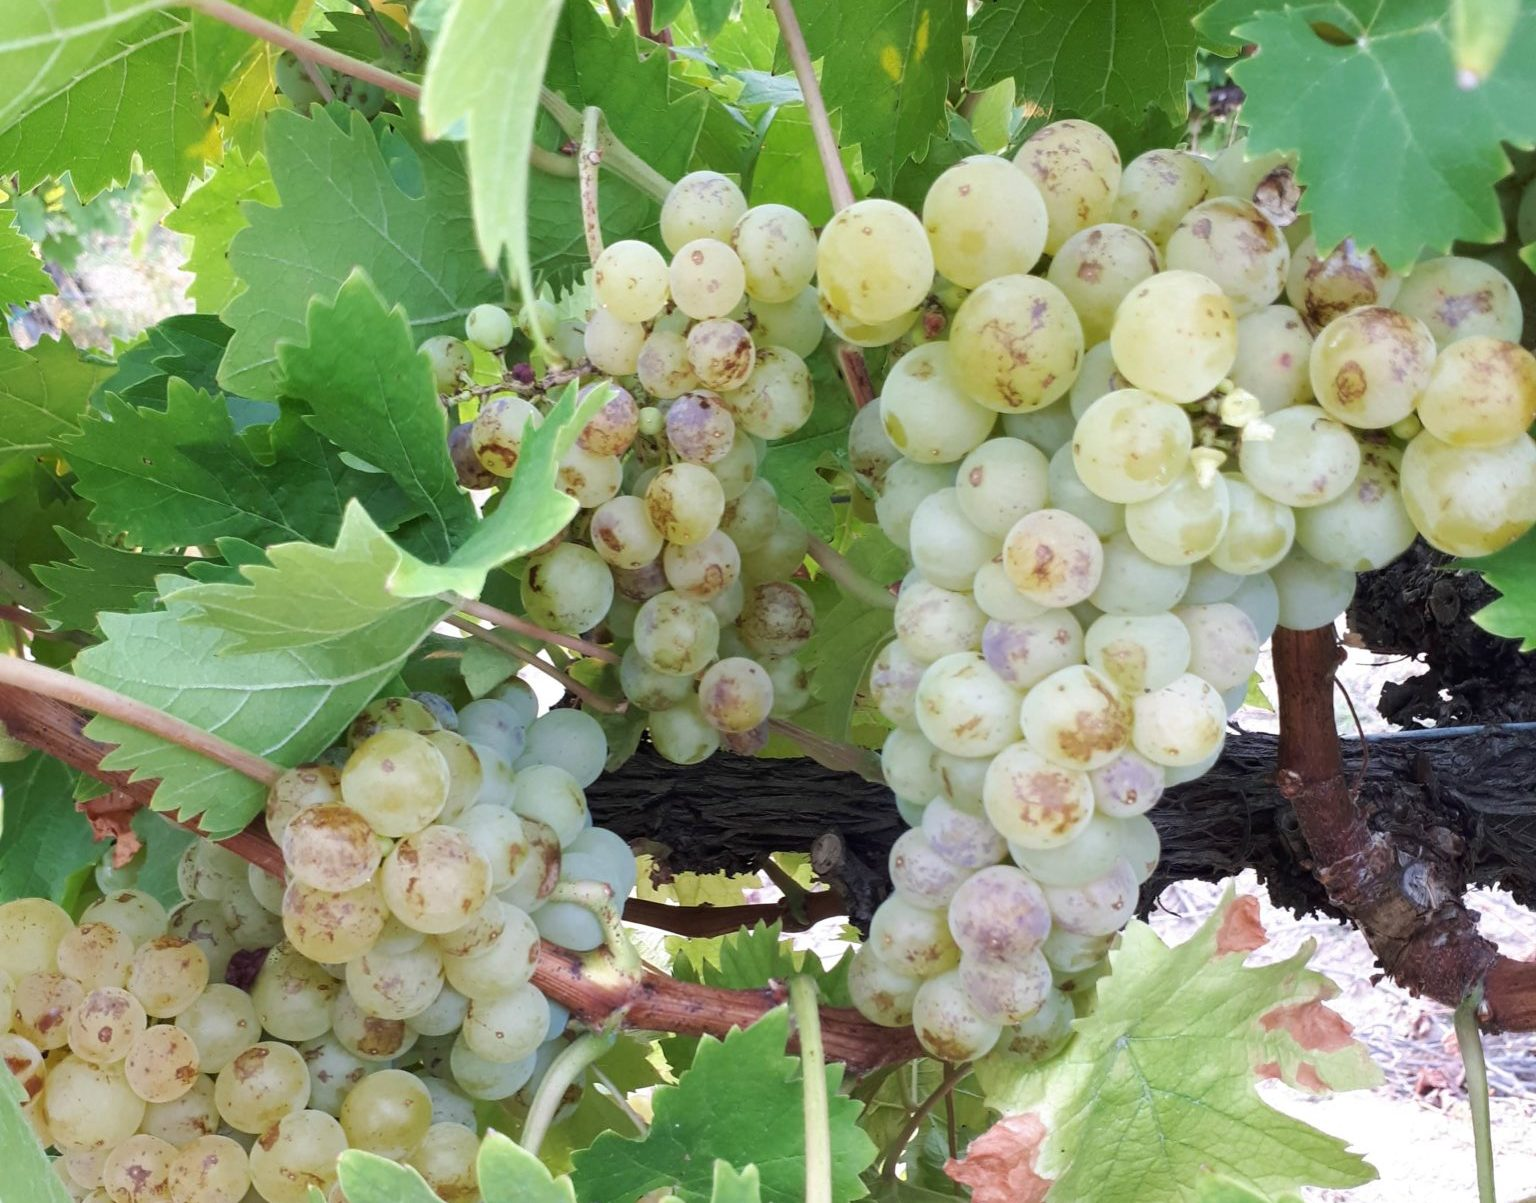 Furmint Noble Rot Photo copyright ©Papp Hideko